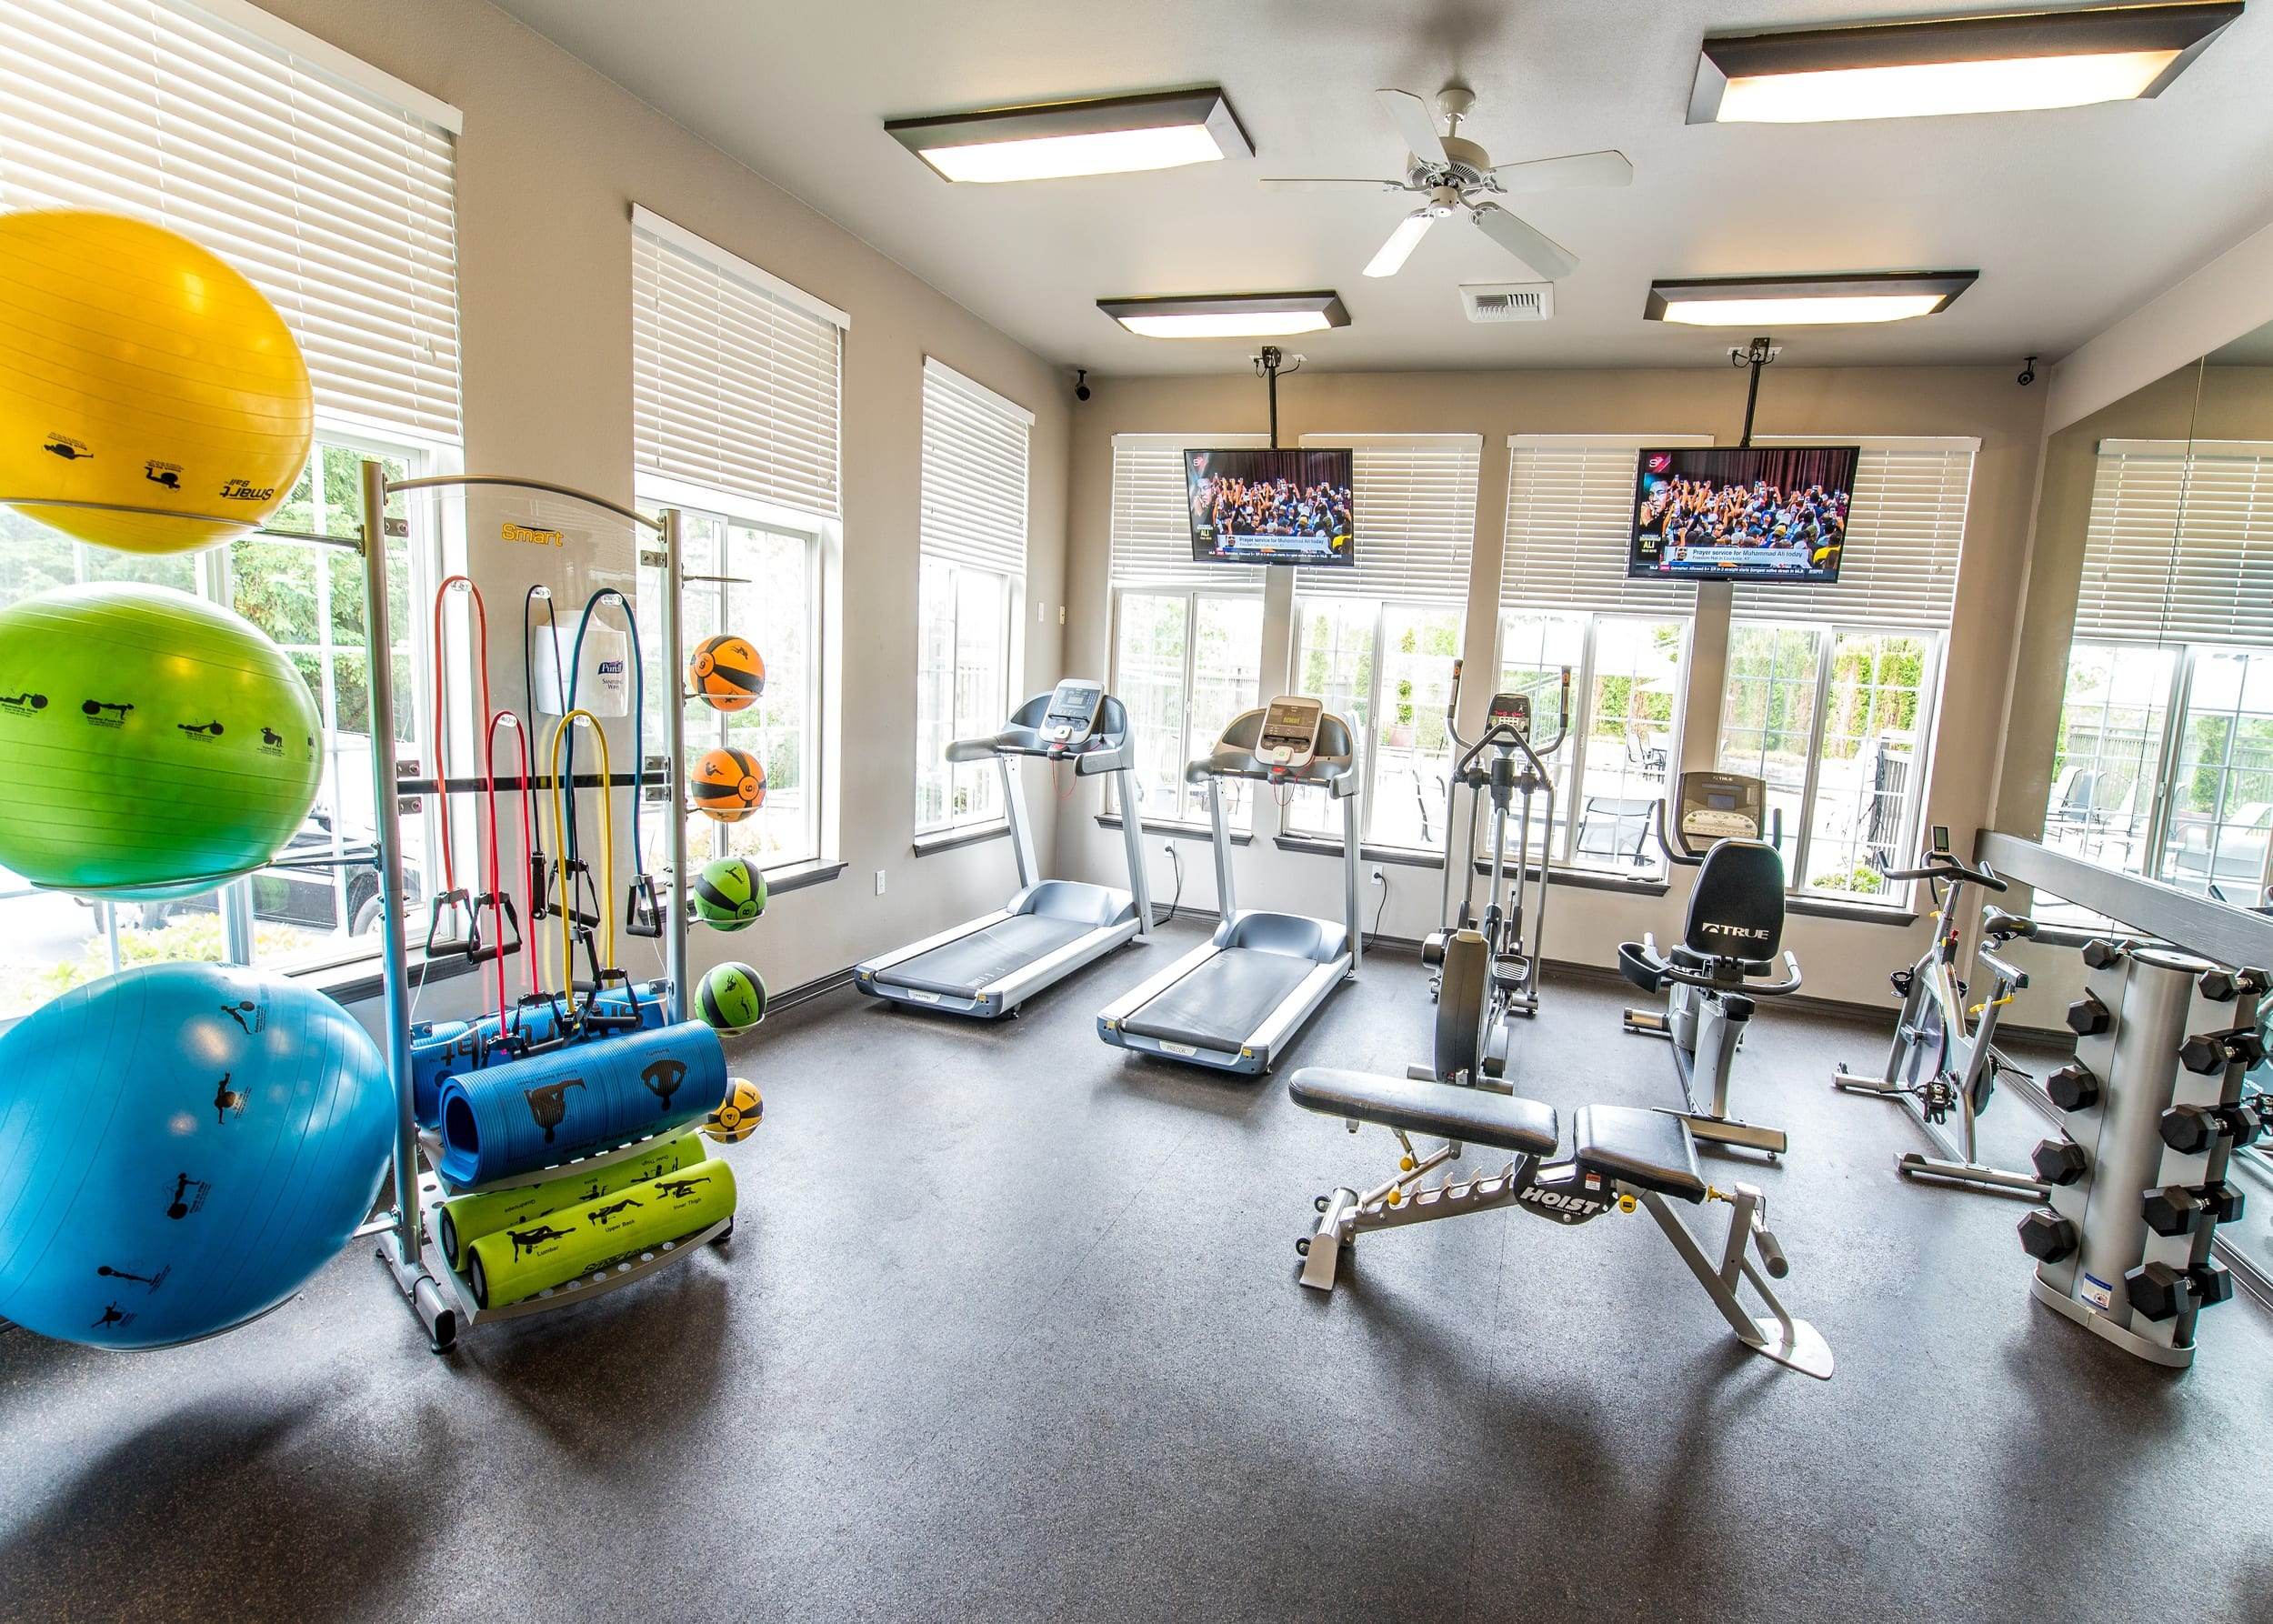 Modern gym with equipment at the apartments in Sammamish